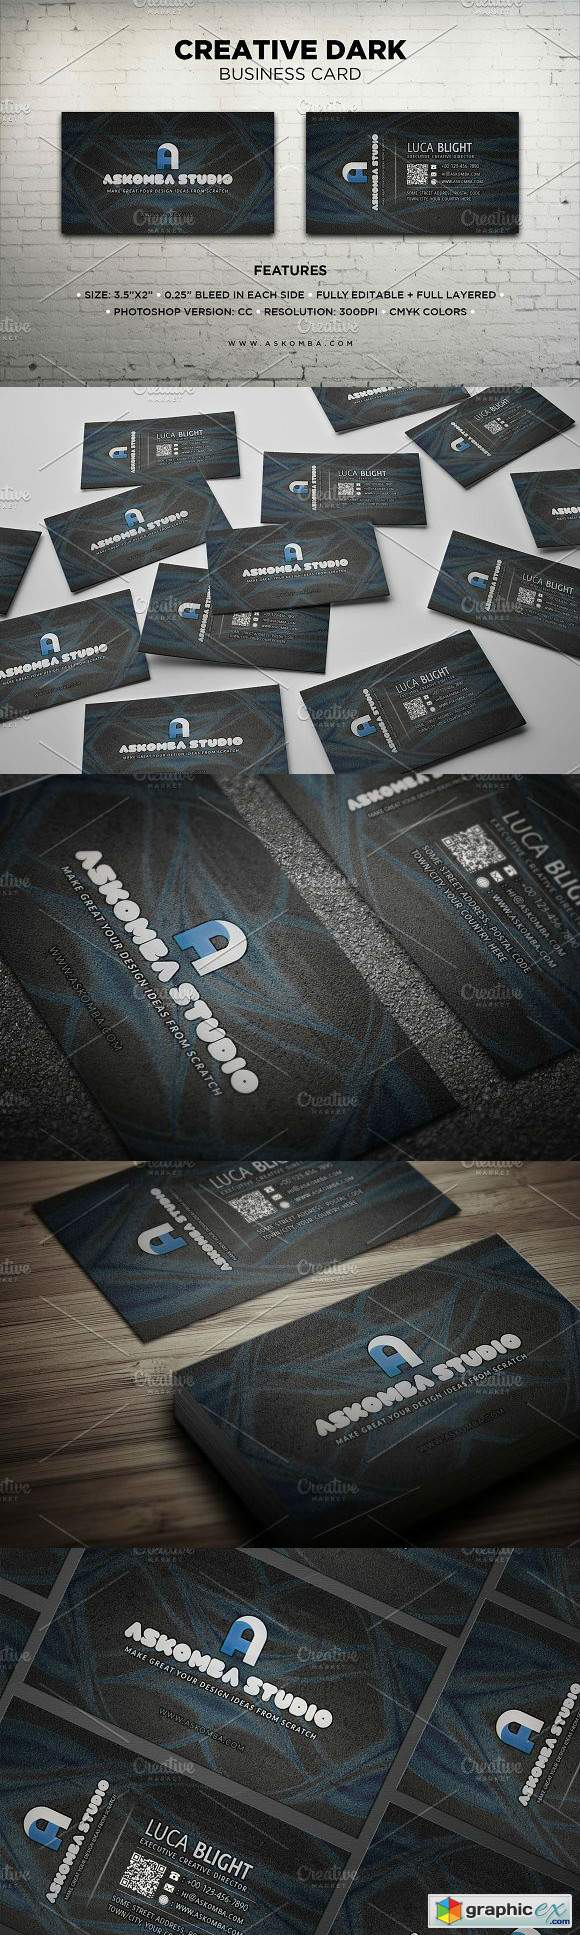 Creative Dark Business Card 2924915